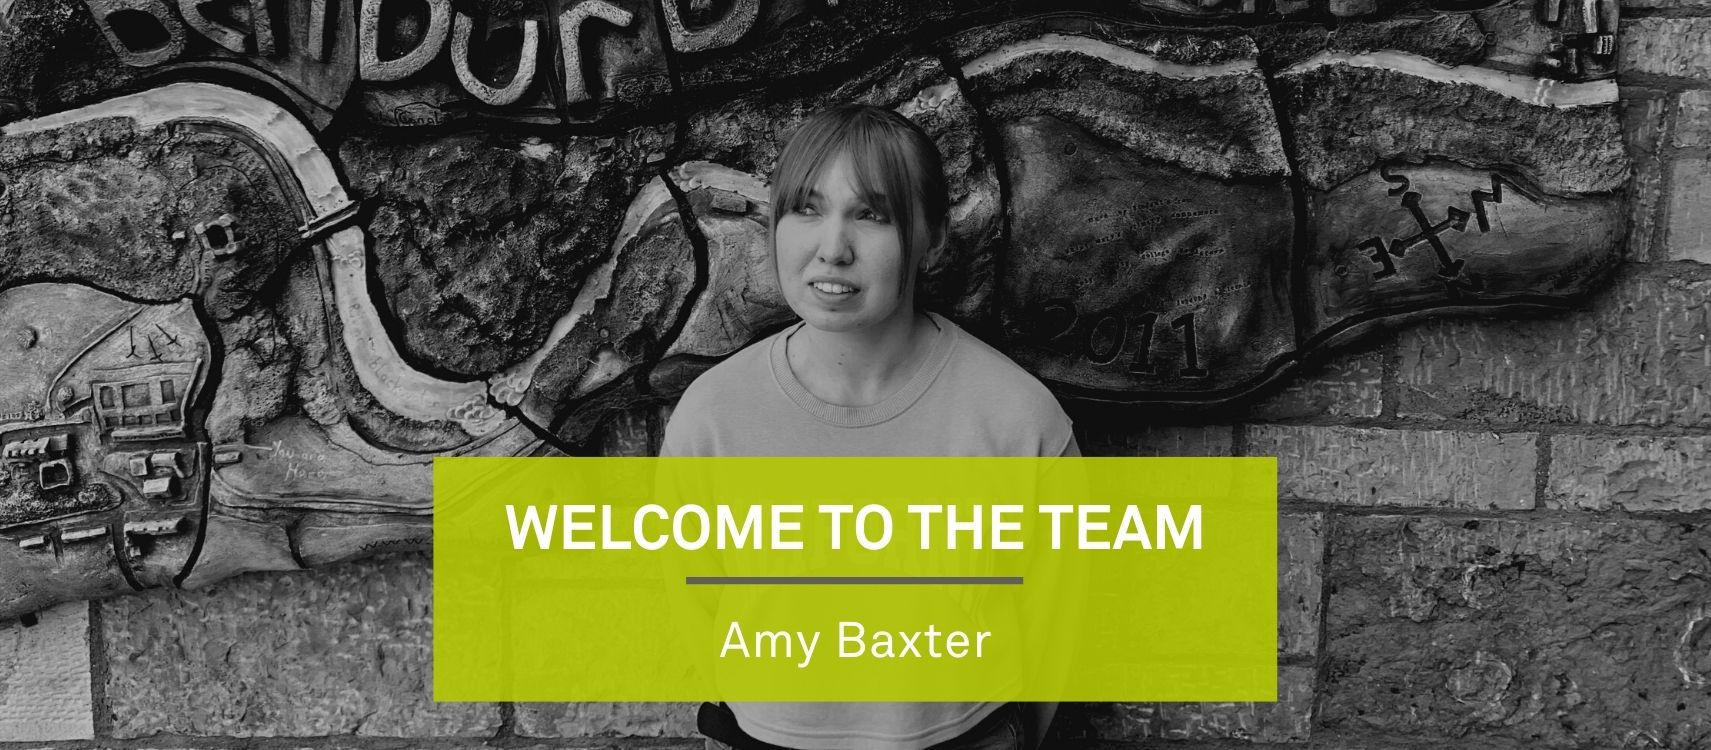 Welcome to the team, Amy Baxter! Image